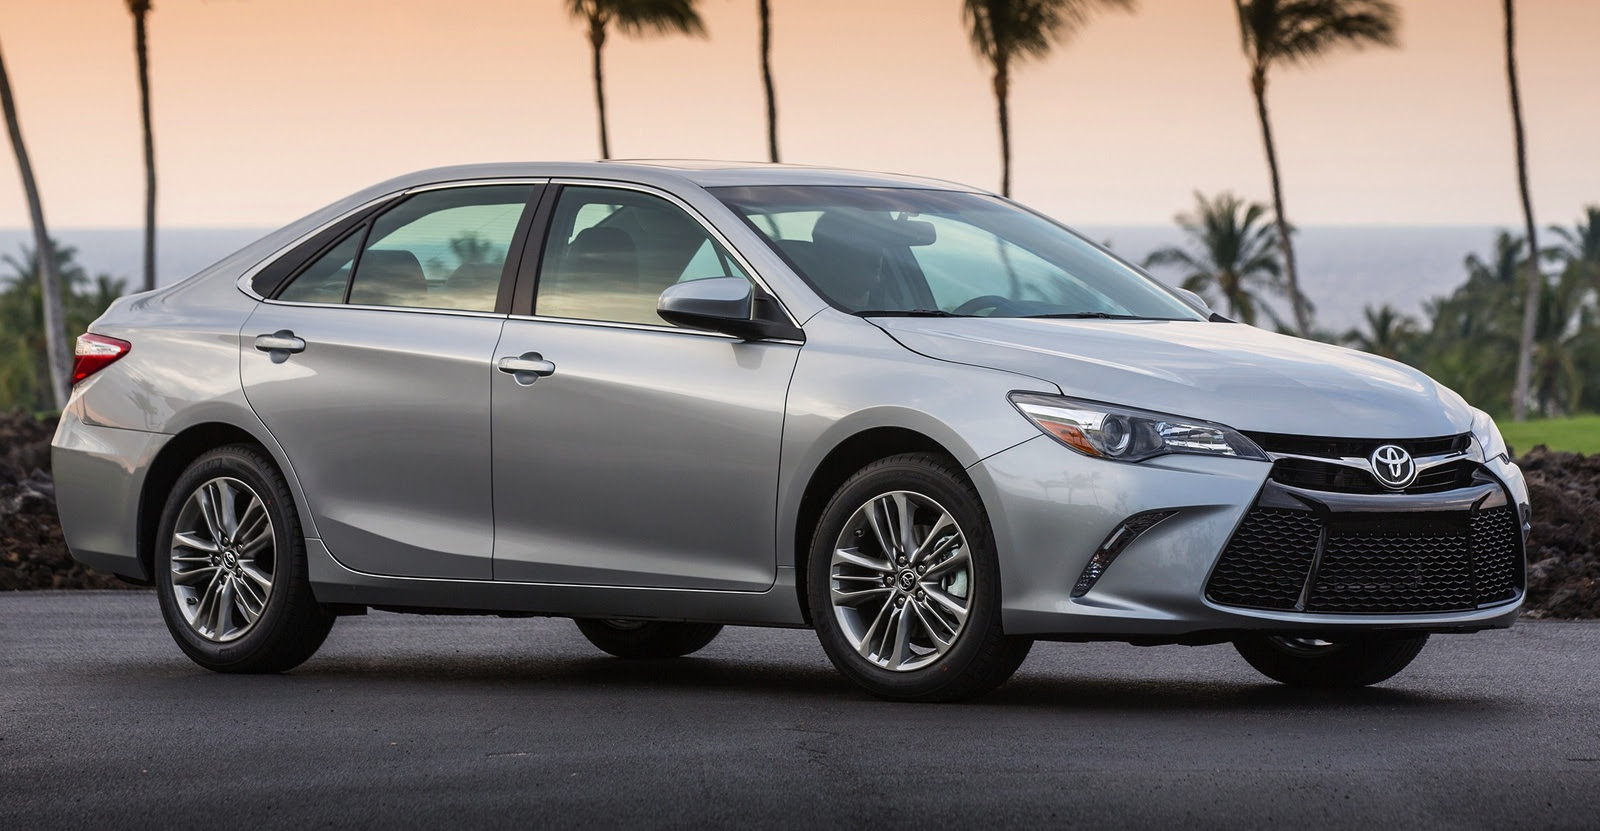 brand new toyota camry for sale price cars 2015  feature car and driver